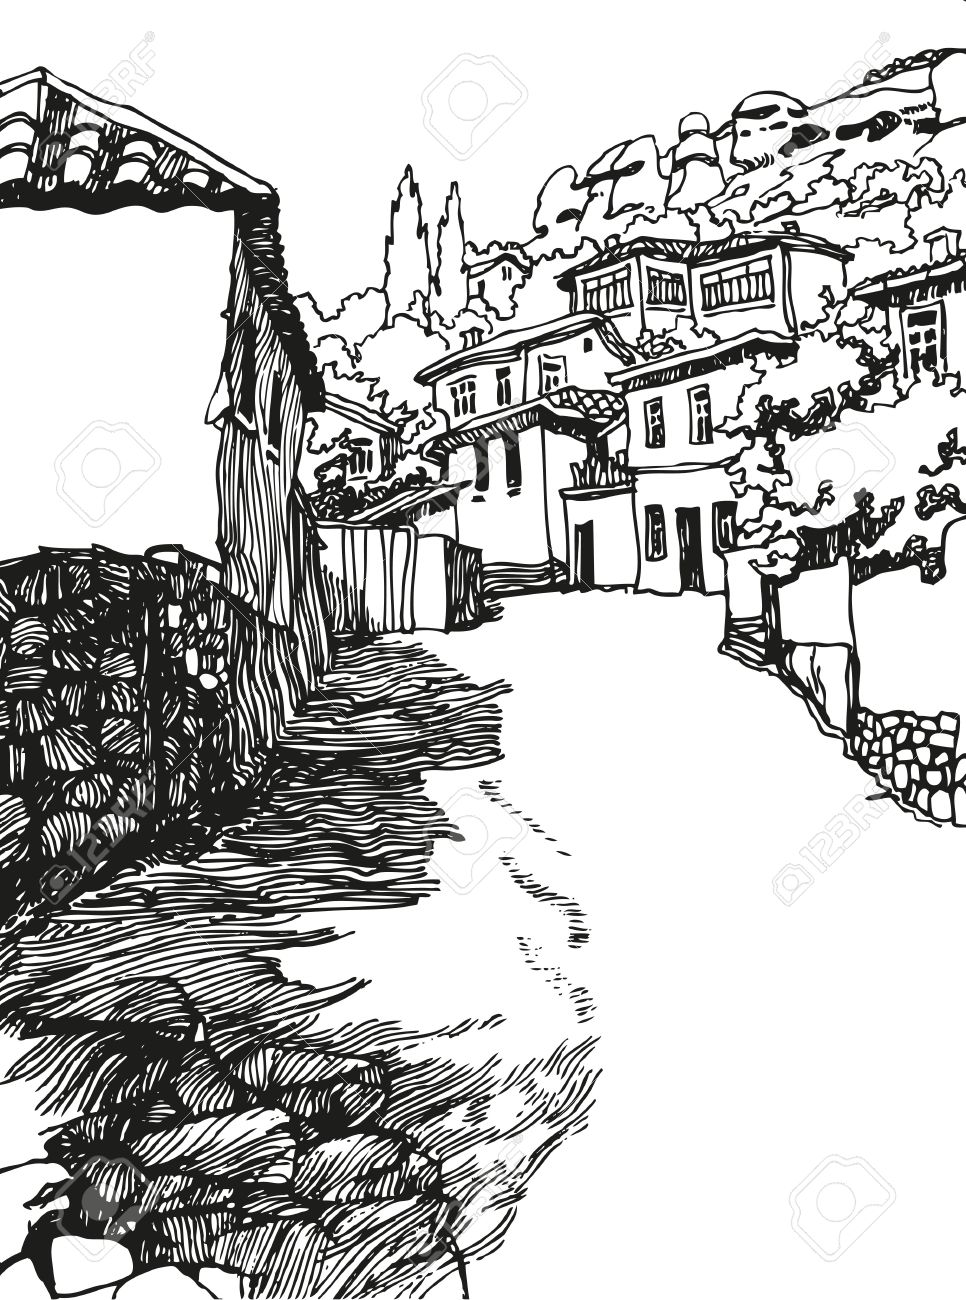 966x1300 Illustration Of The Black And White Design Of The Old City. Sketch